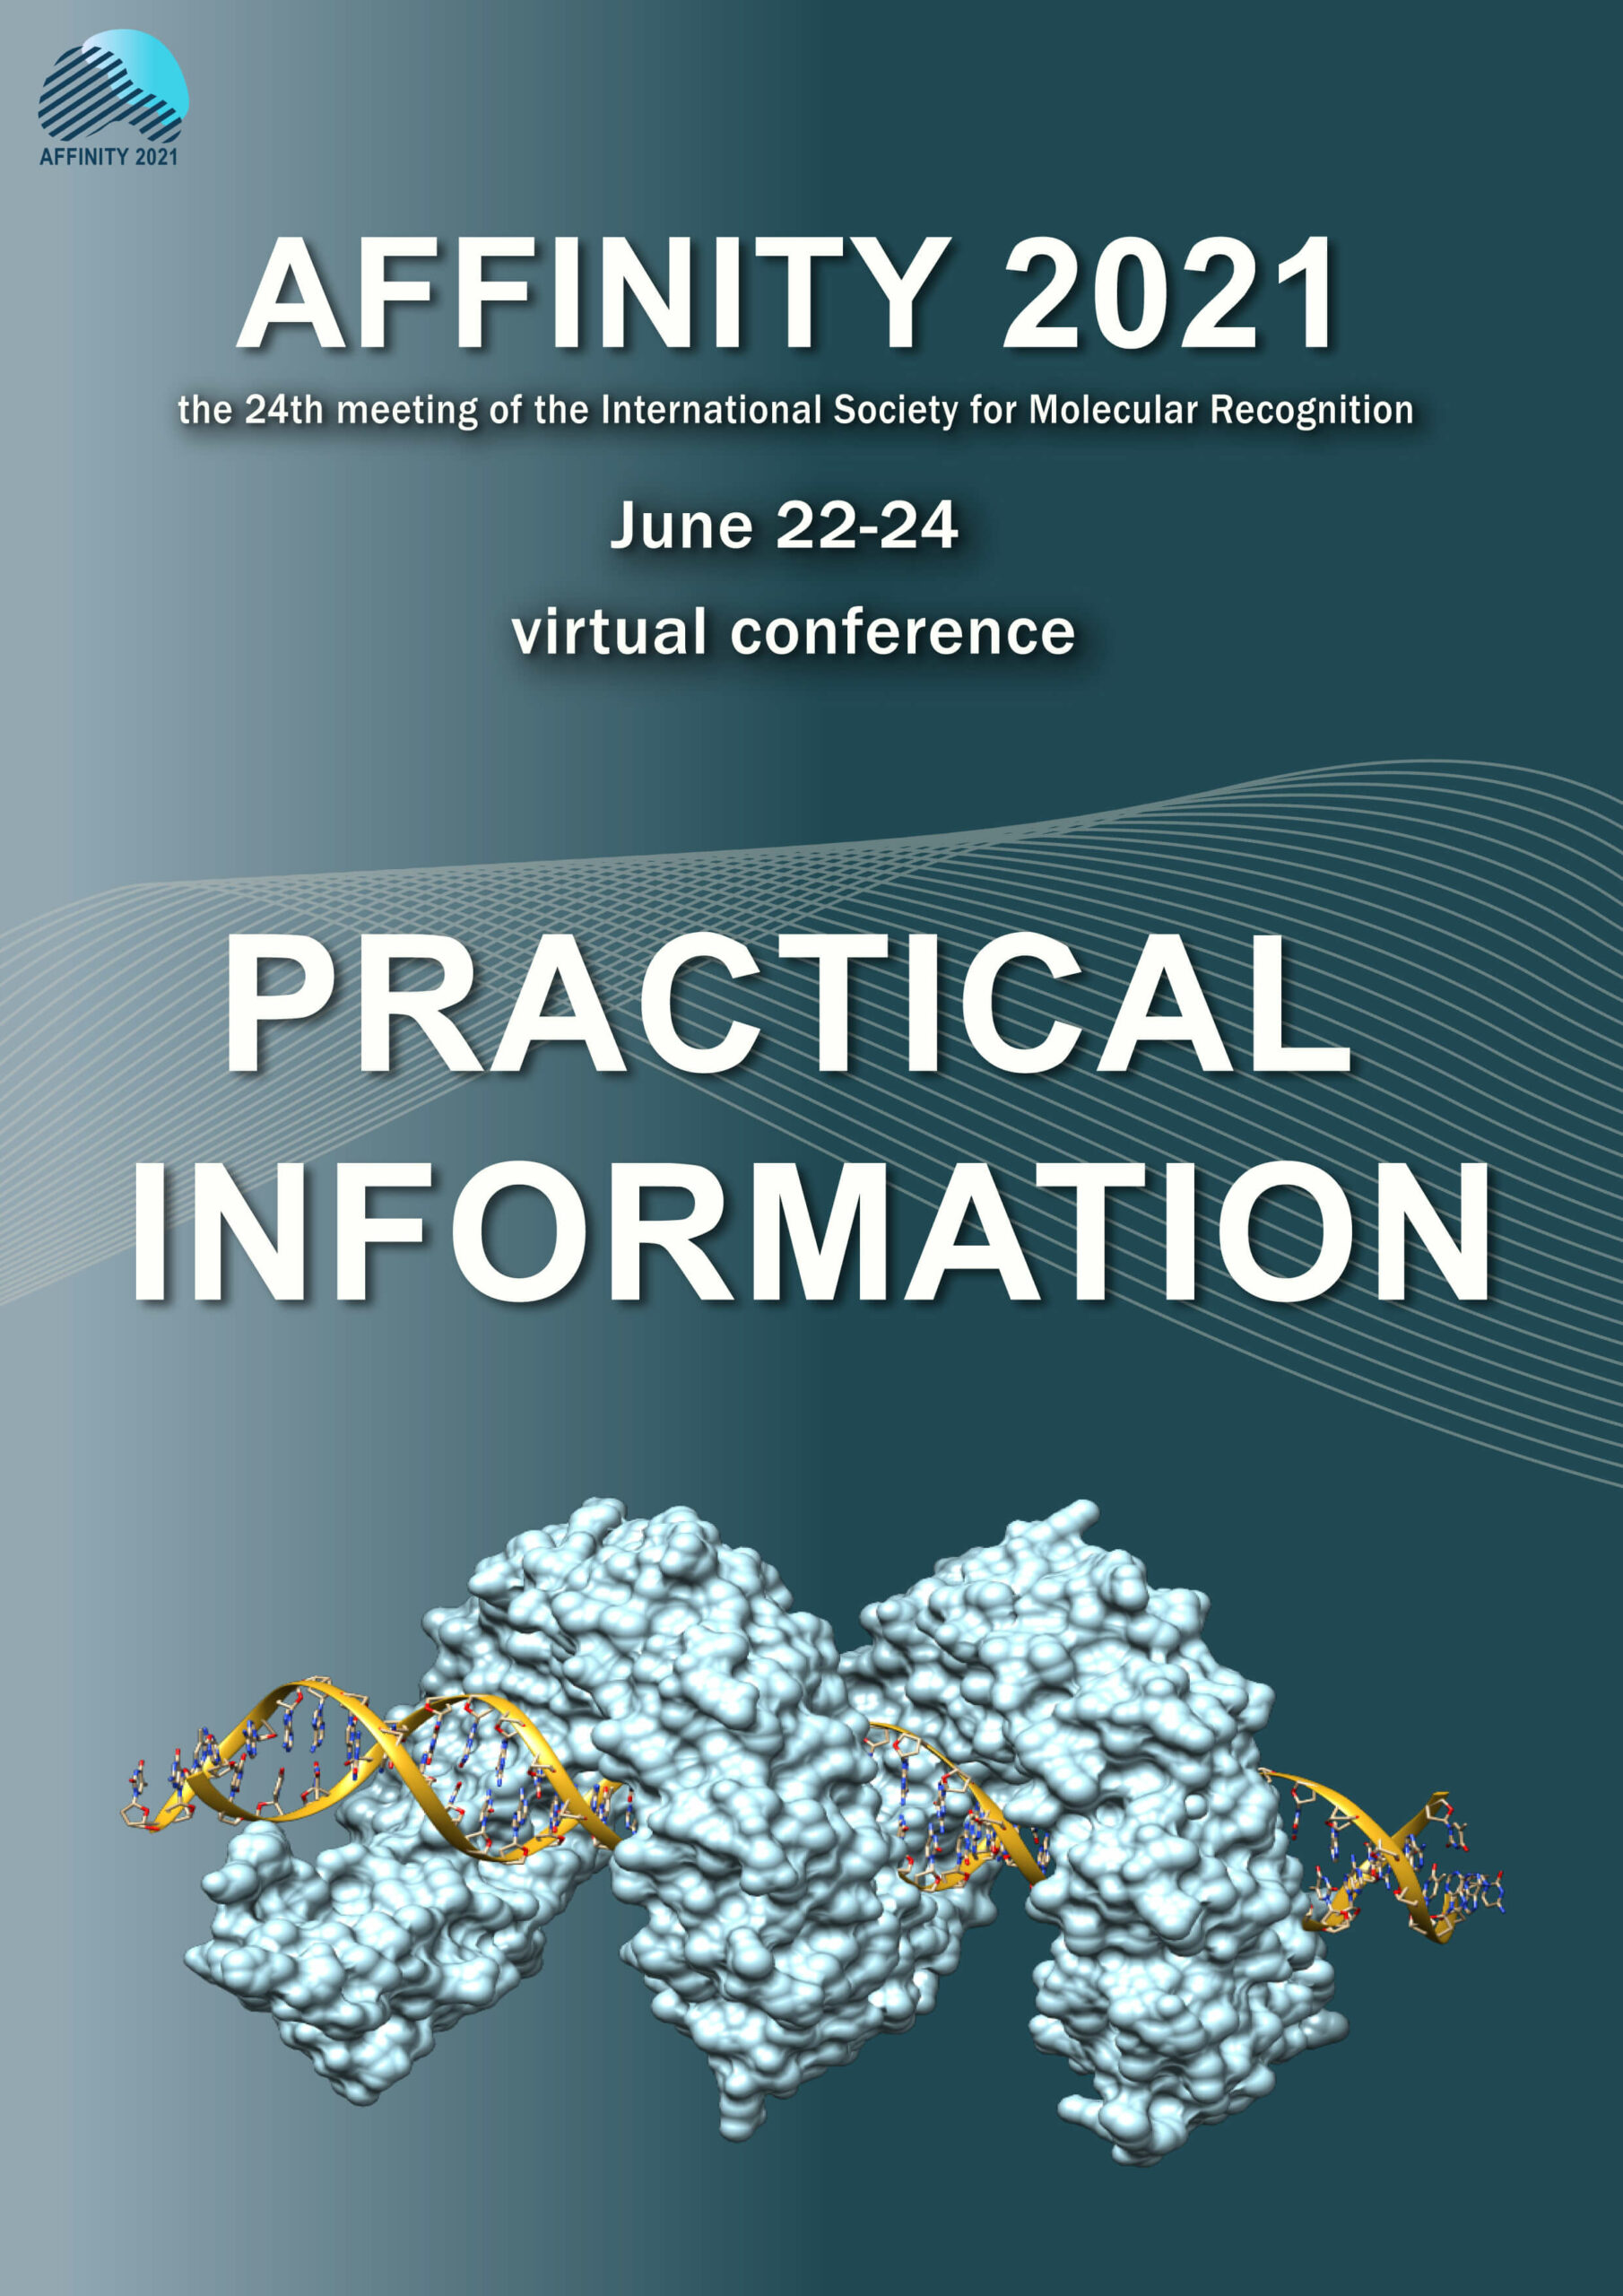 Online conference advices and best practice